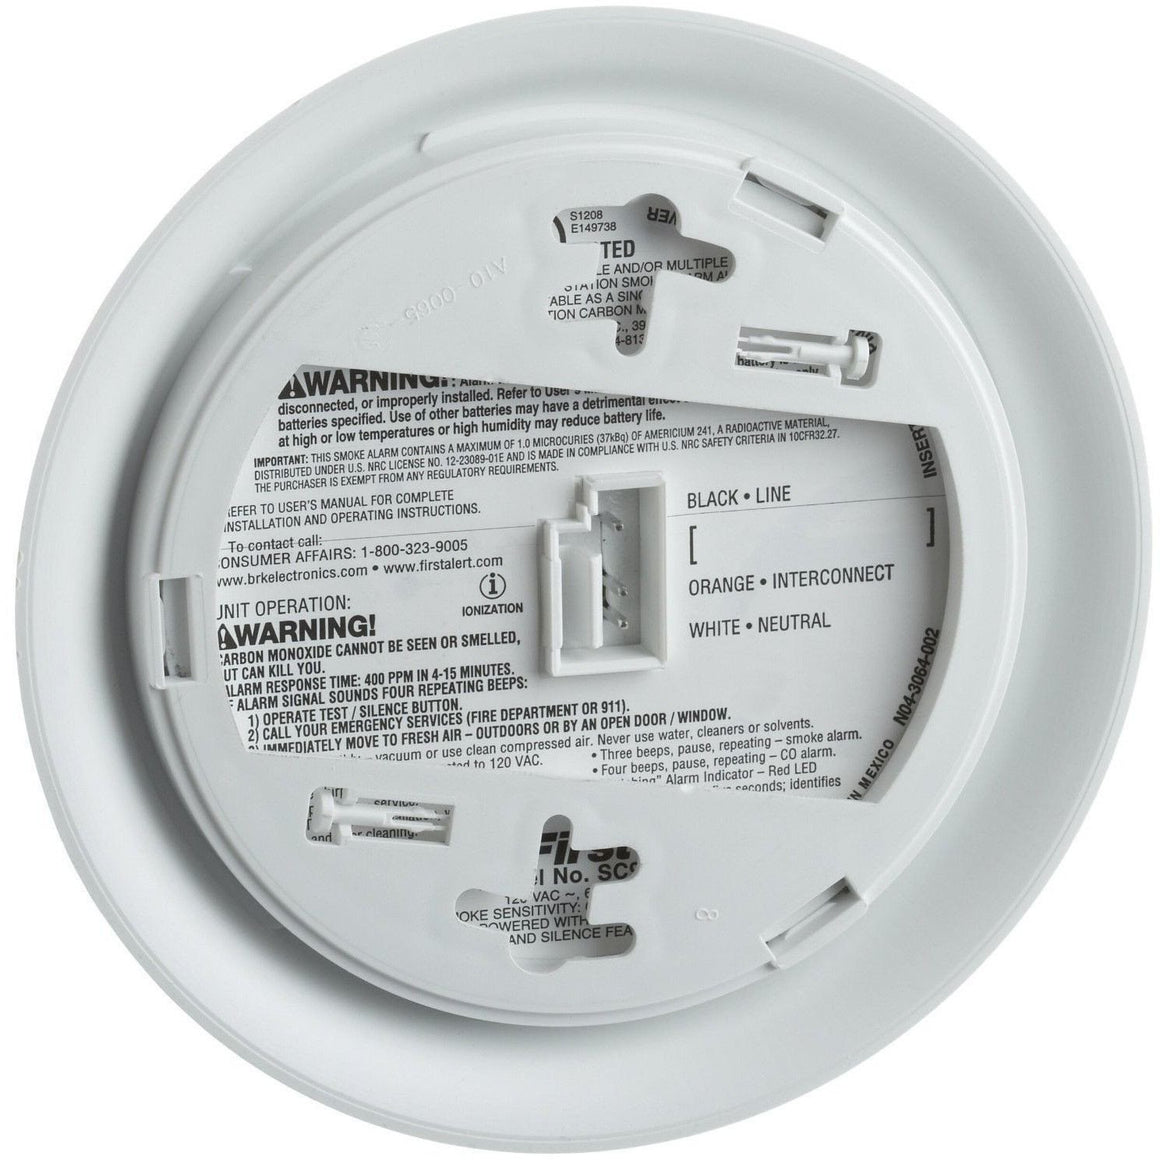 BRK First Alert - SC9120B Hardwired Smoke & Carbon Monoxide Alarm